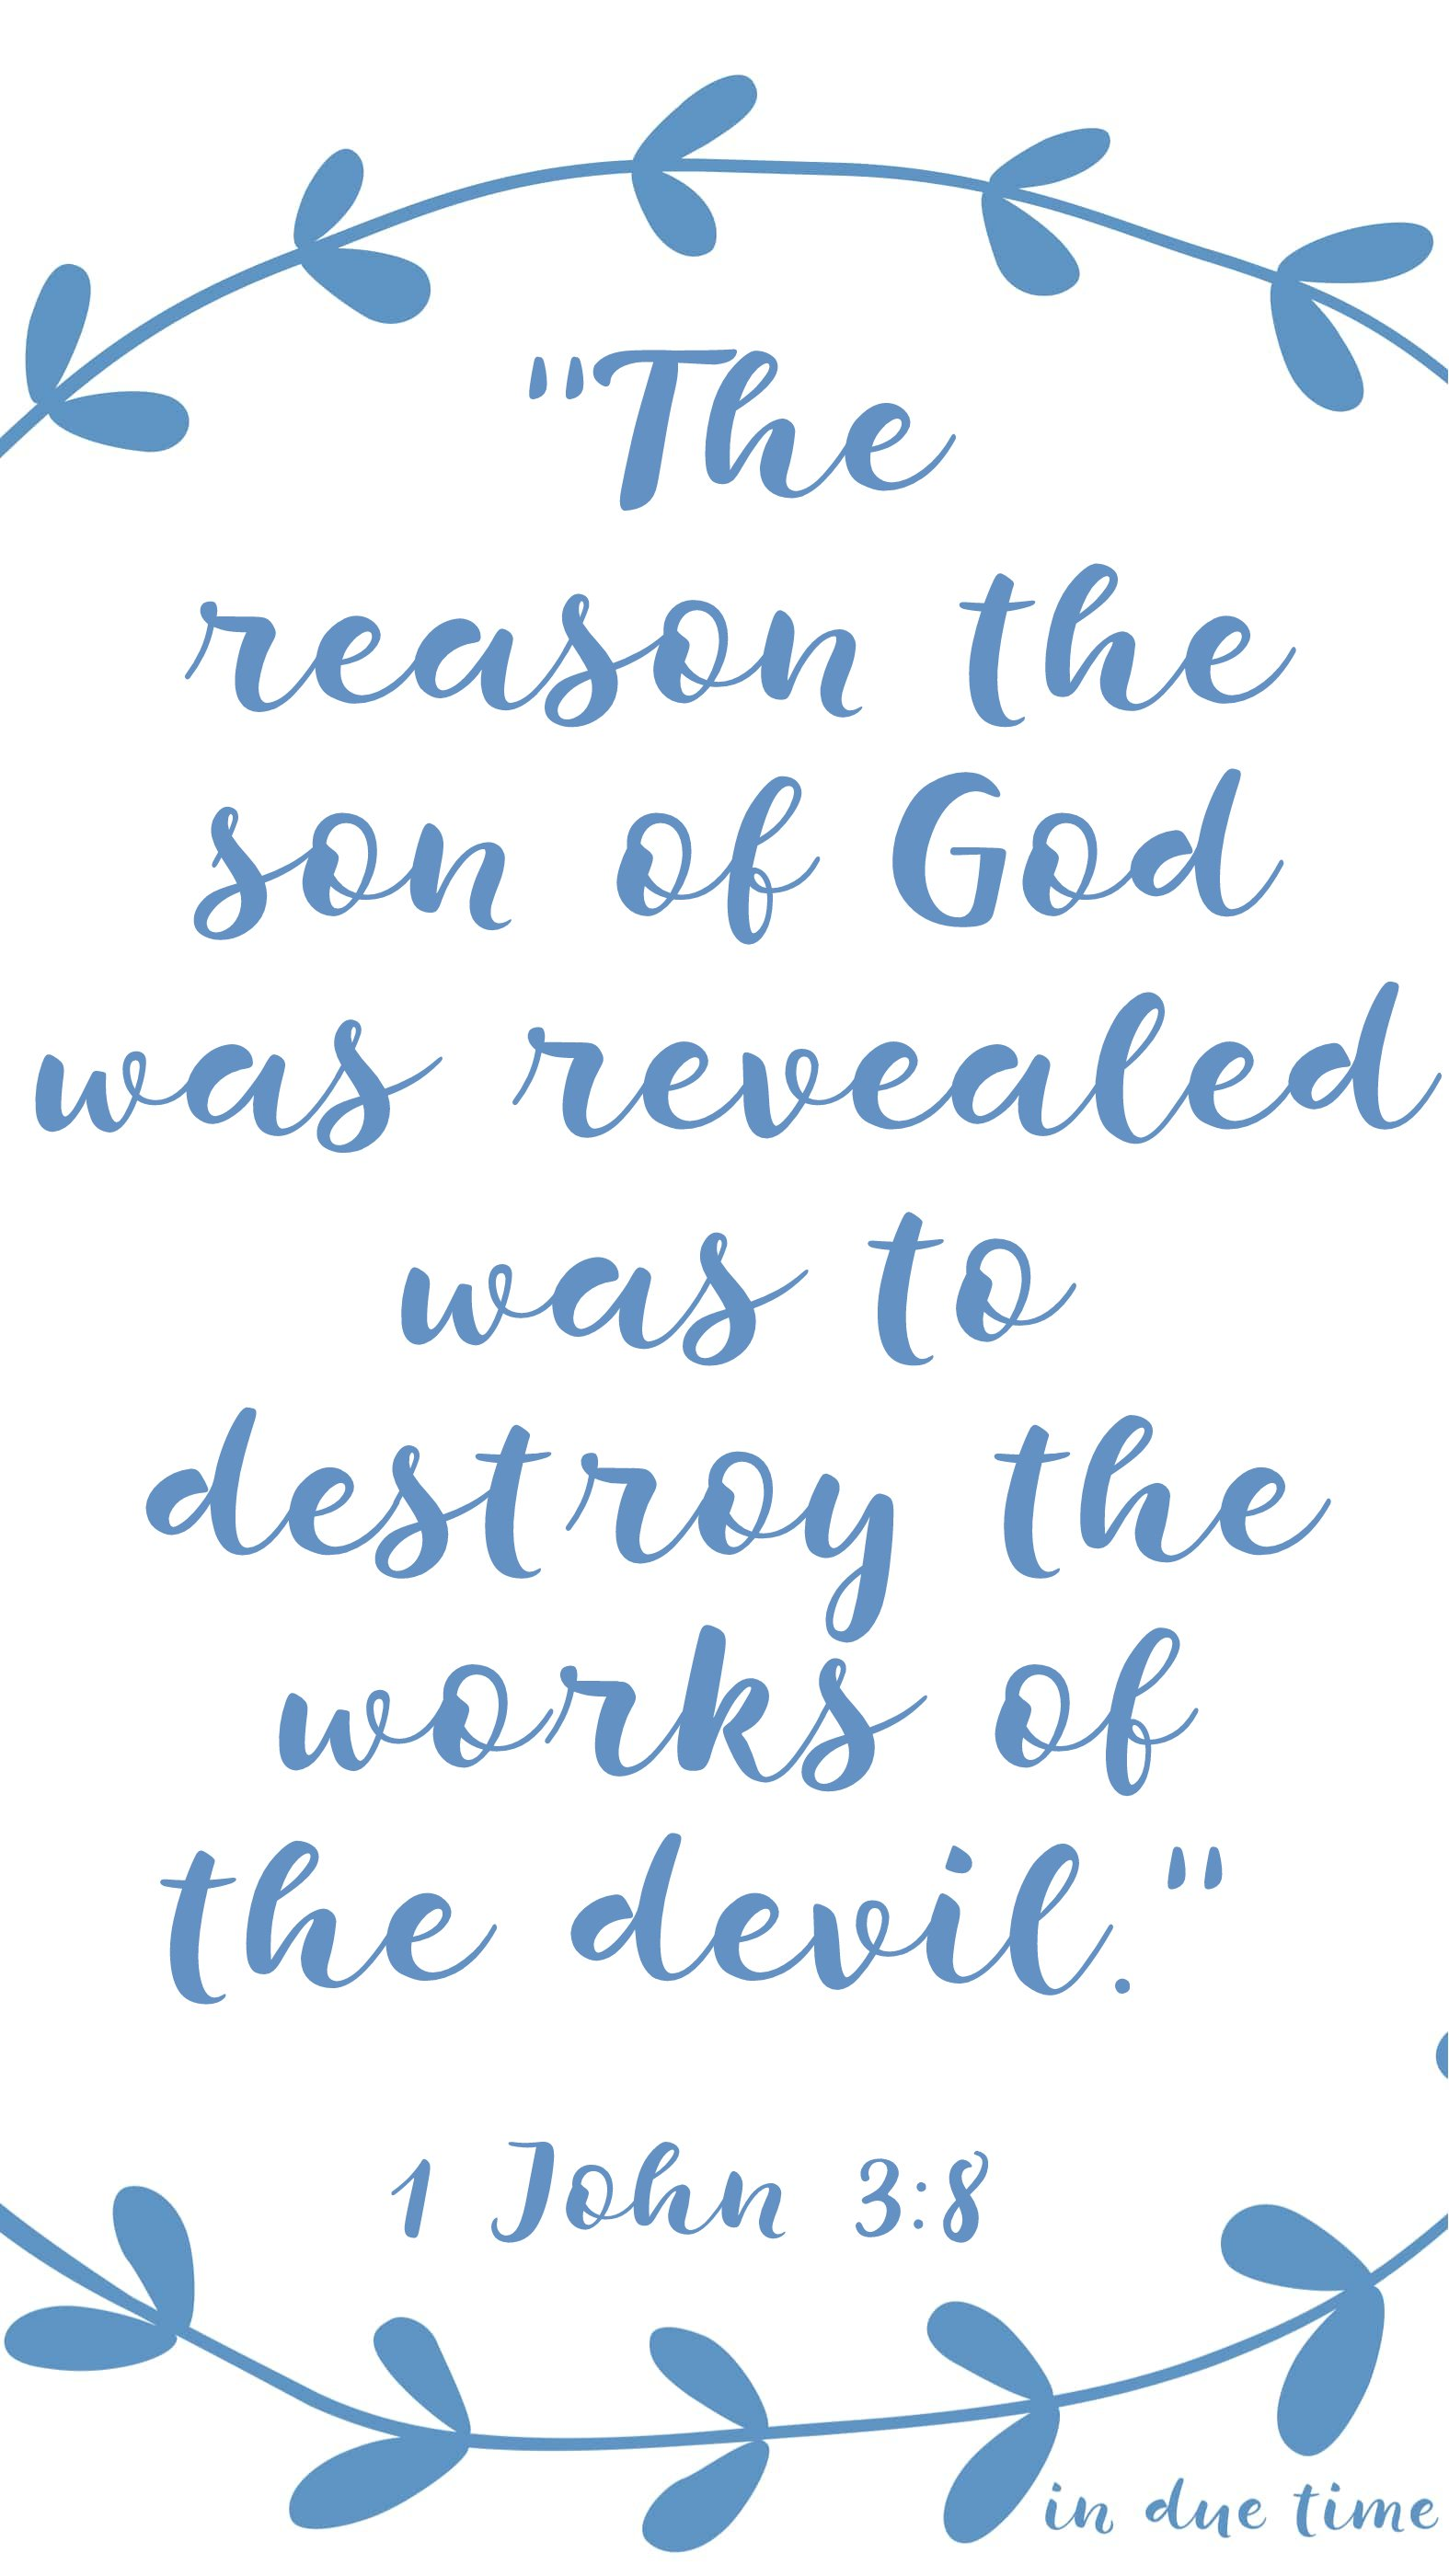 the reason the son of god was revealed was to destroy 1 john 3